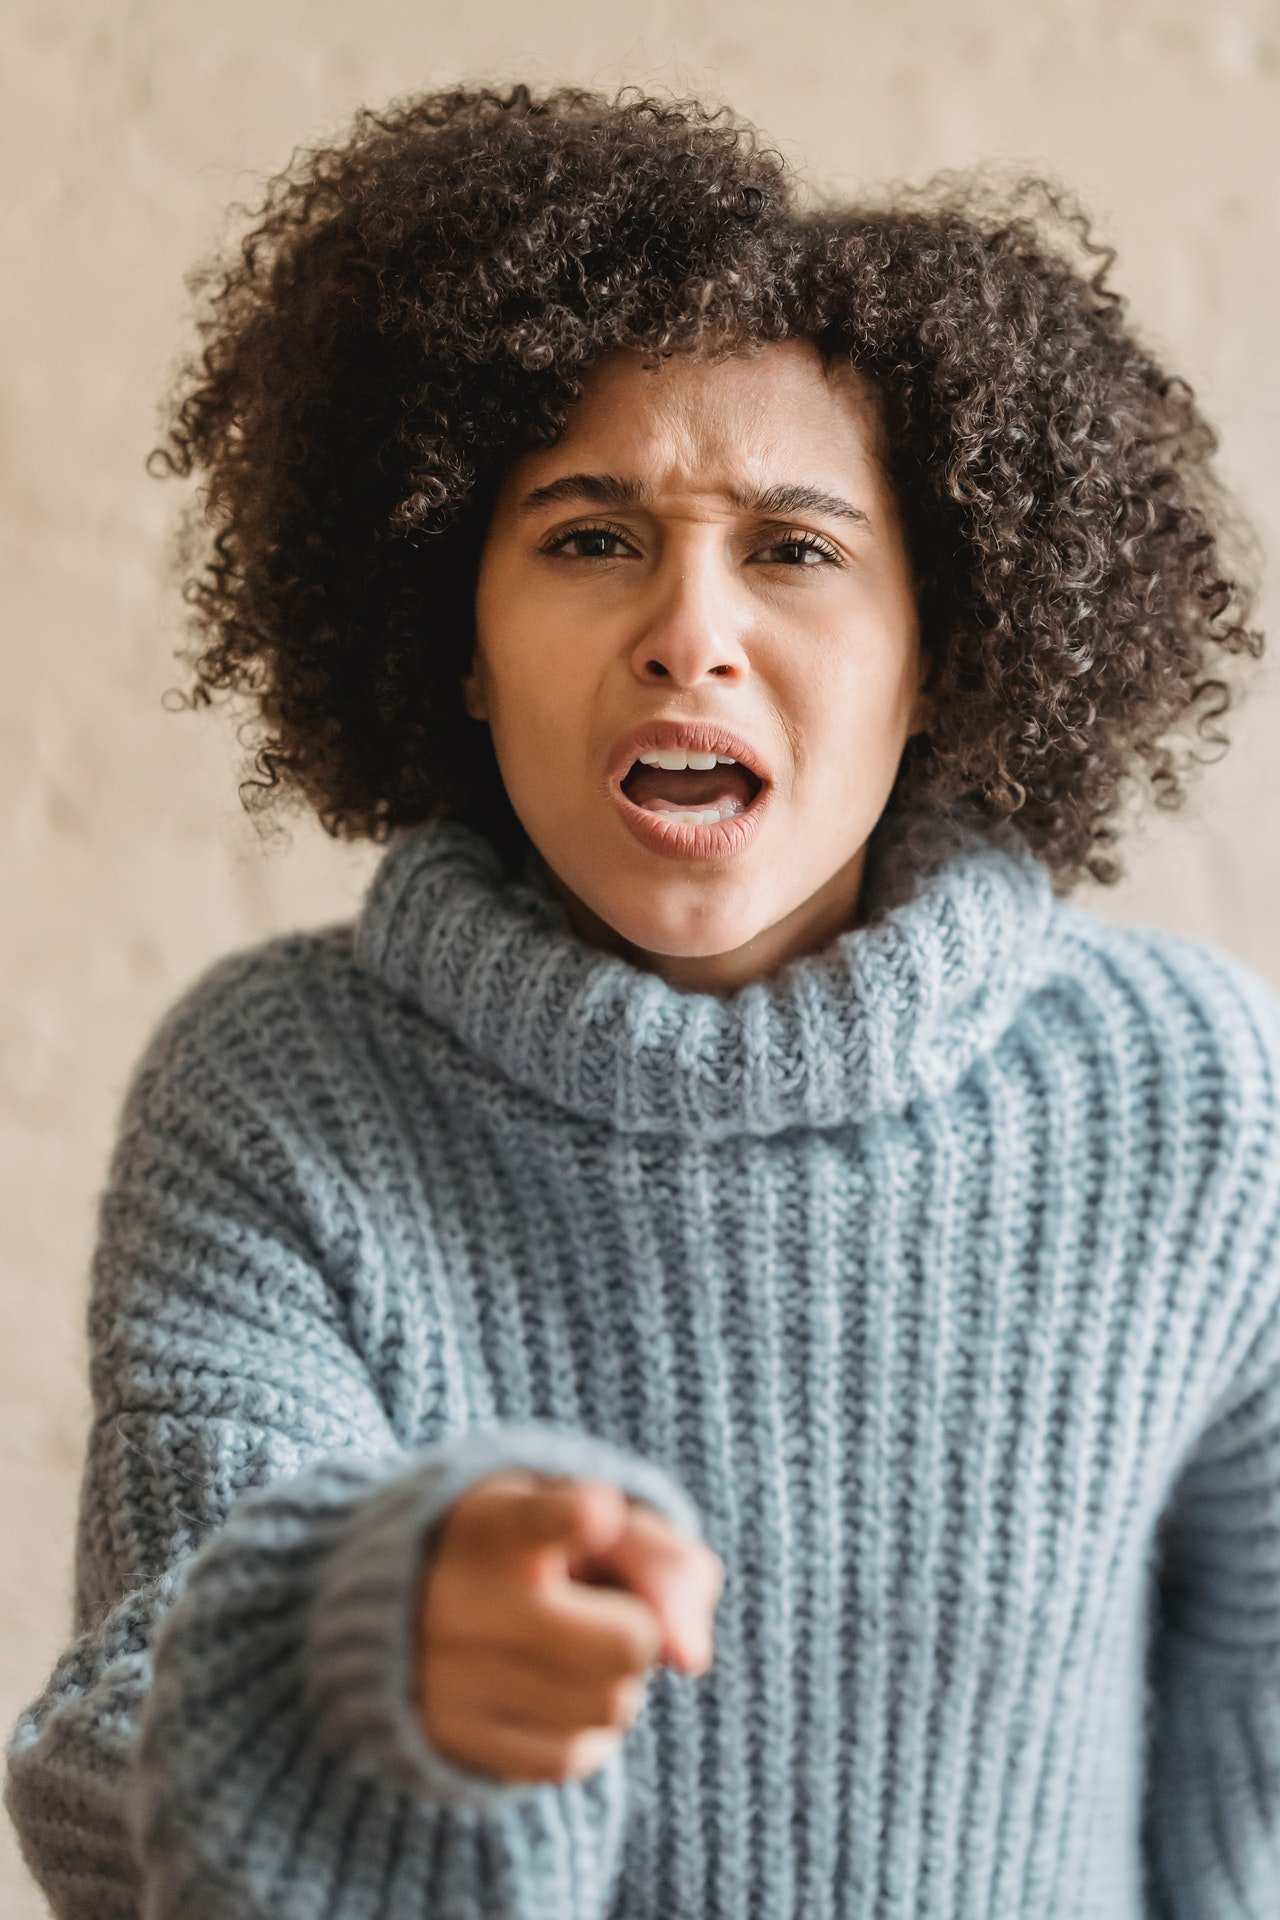 Woman yelling and pointing her finger | Source: Pexels